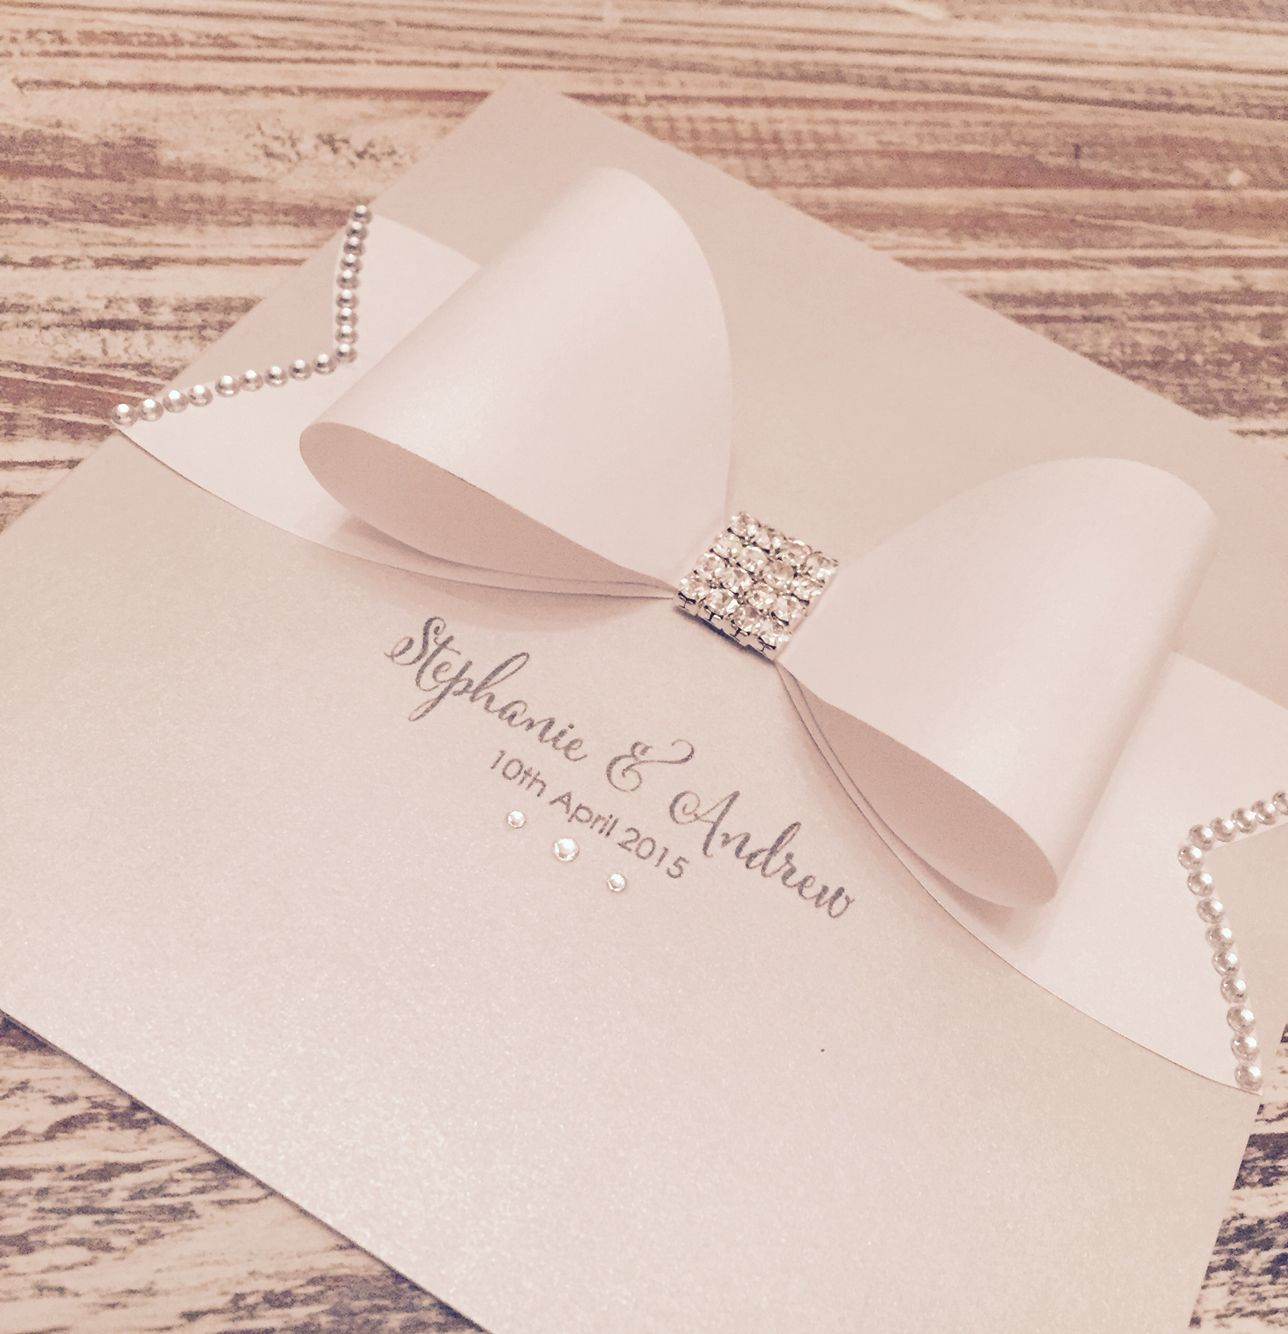 Where To Buy Wedding Invitation Paper: Beautiful Simple Invites With A White Paper Now And